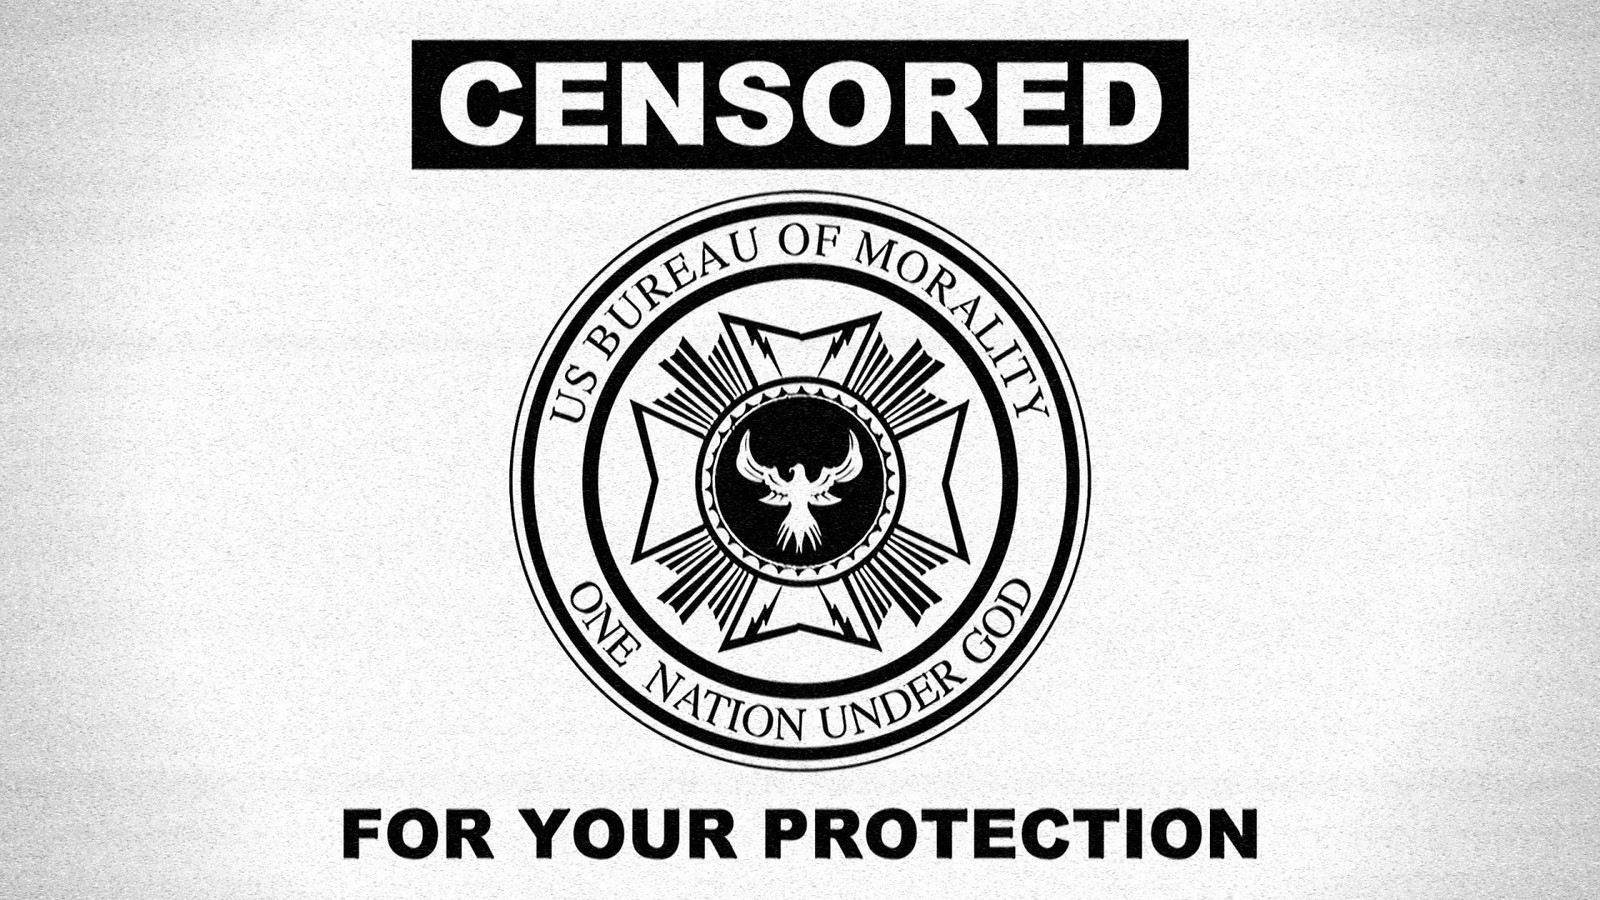 5 Inch Screen Hd Wallpapers Censored Government Wallpaper Allwallpaper In 6242 Pc